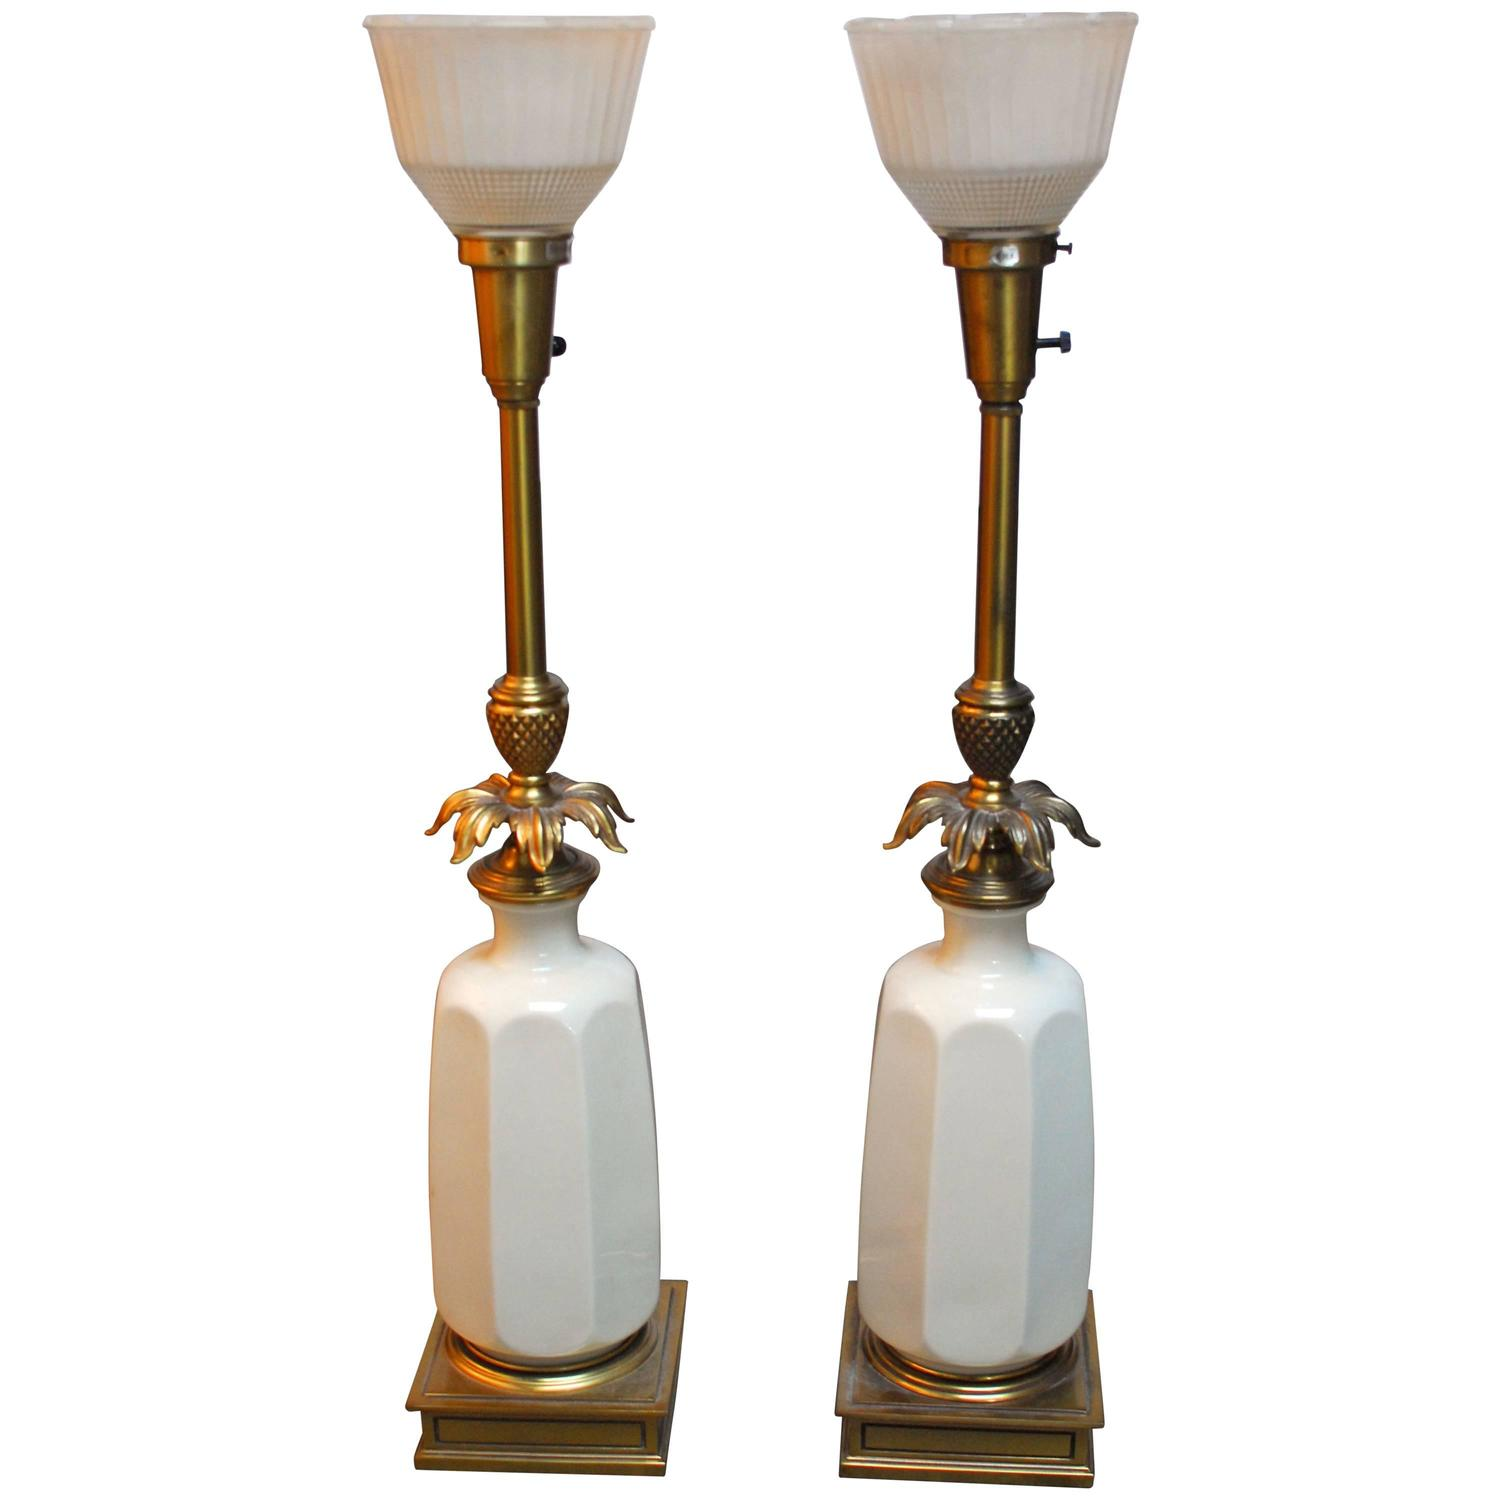 Vintage stiffel brass table lamps - Hollywood Regency Lenox Porcelain And Brass Stiffel Lamps For Sale At 1stdibs